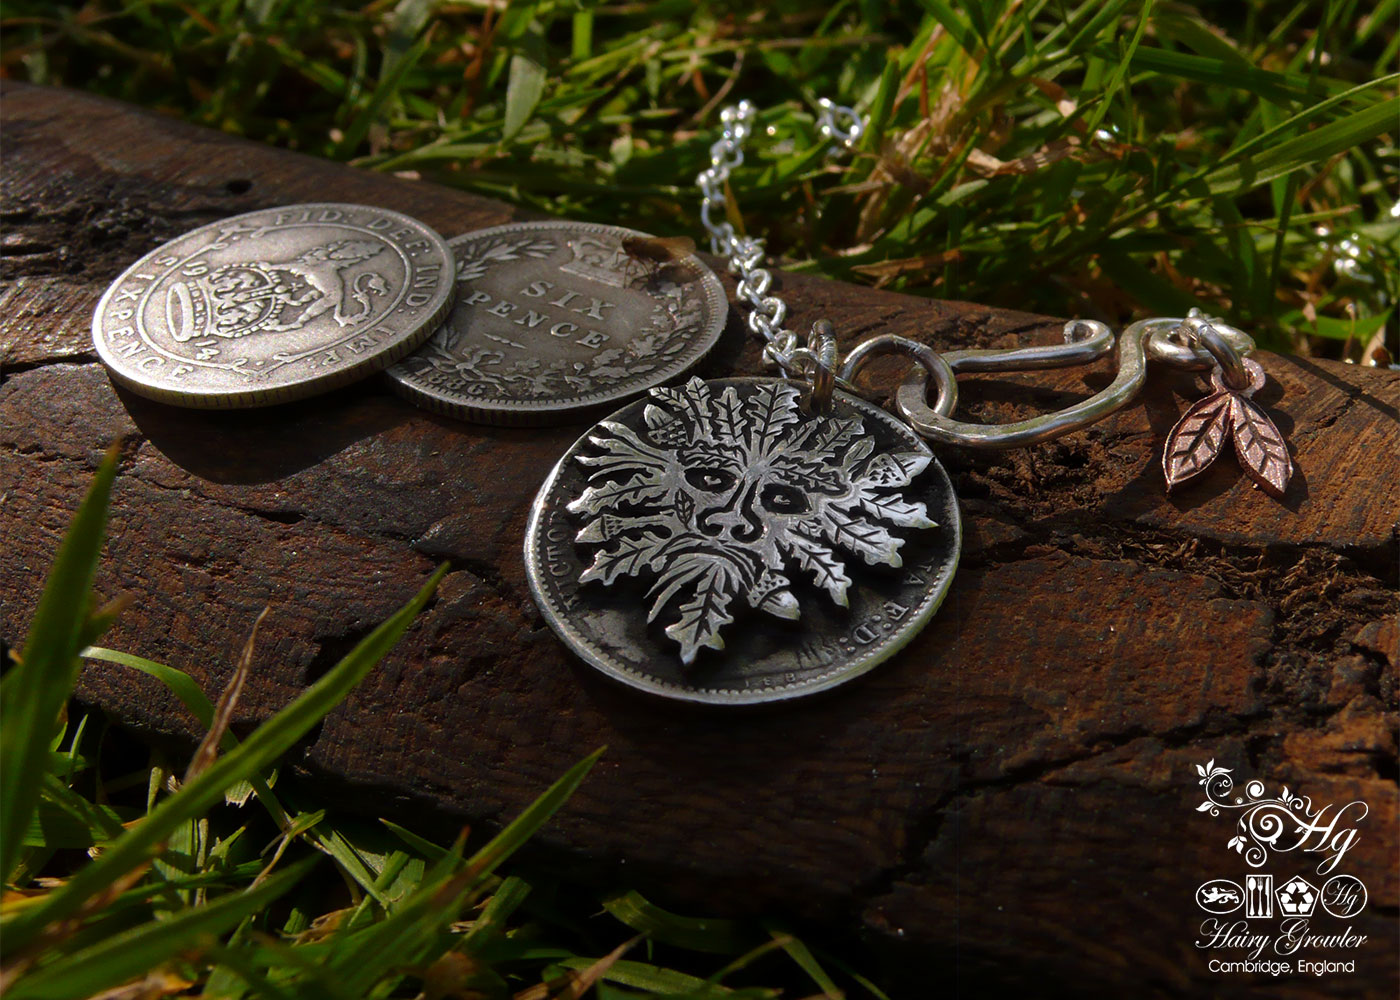 Handcrafted and recycled silver sixpence coin green man pendant necklace